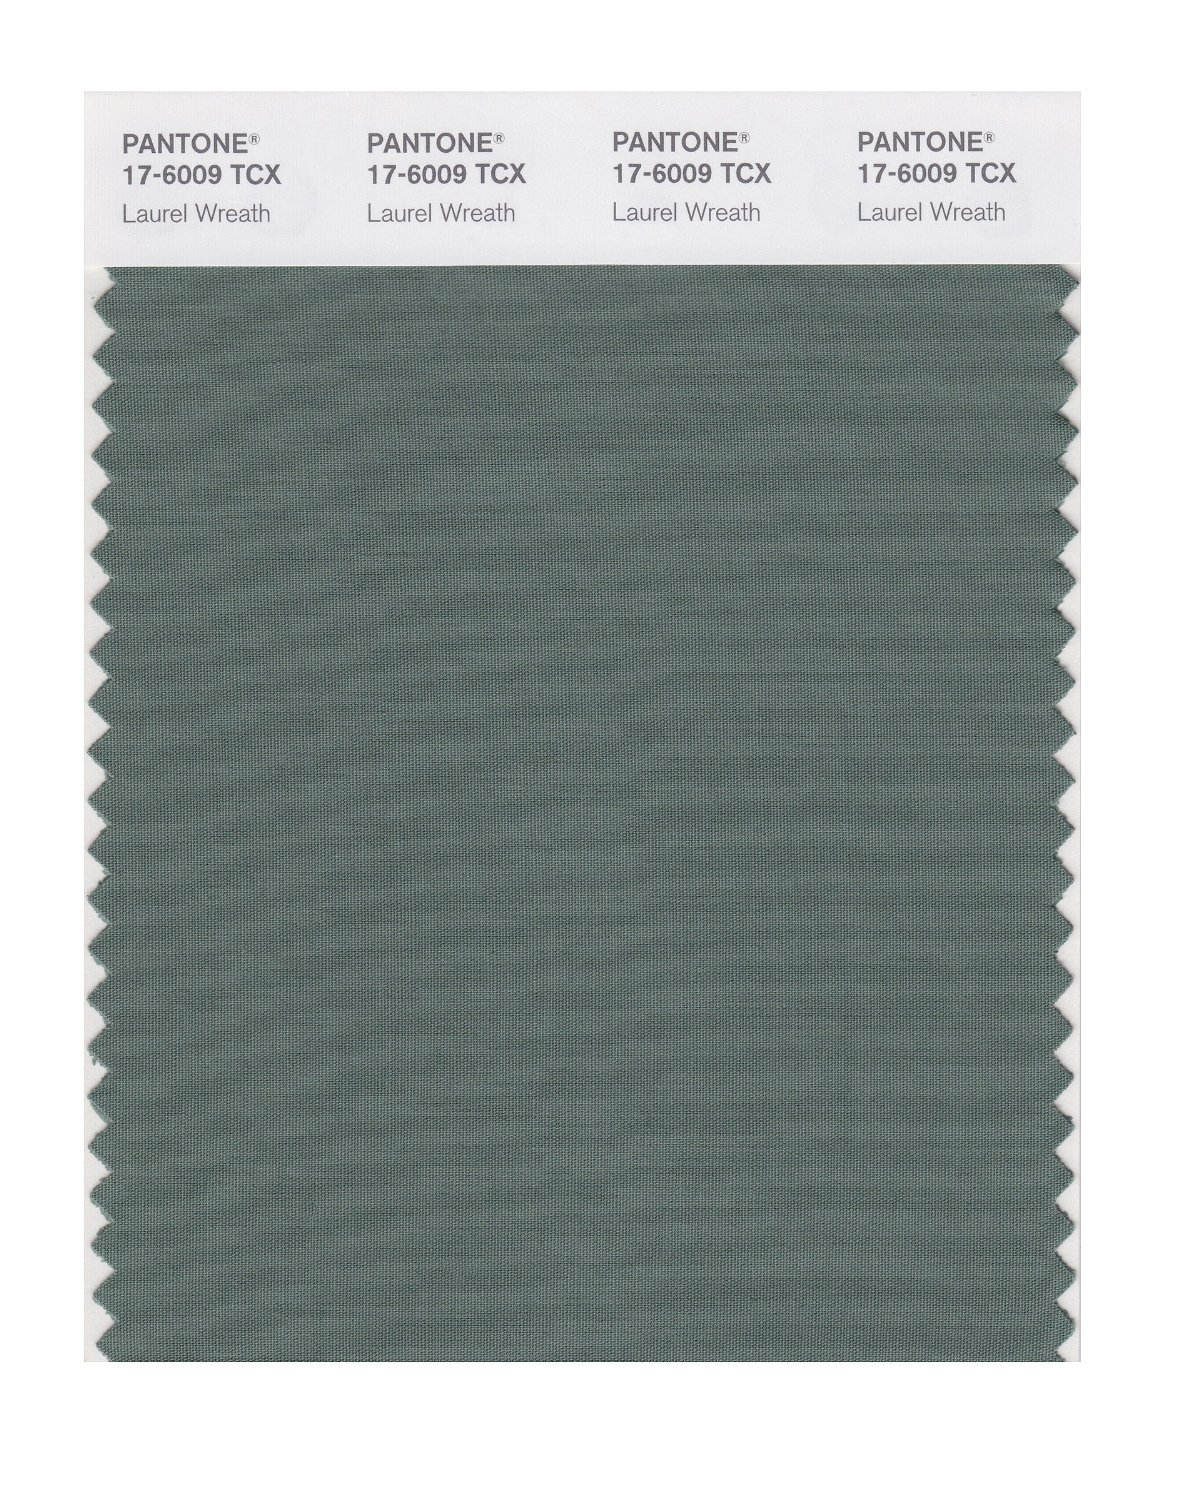 Pantone Smart Swatch 17-6009 Laurel Wreath